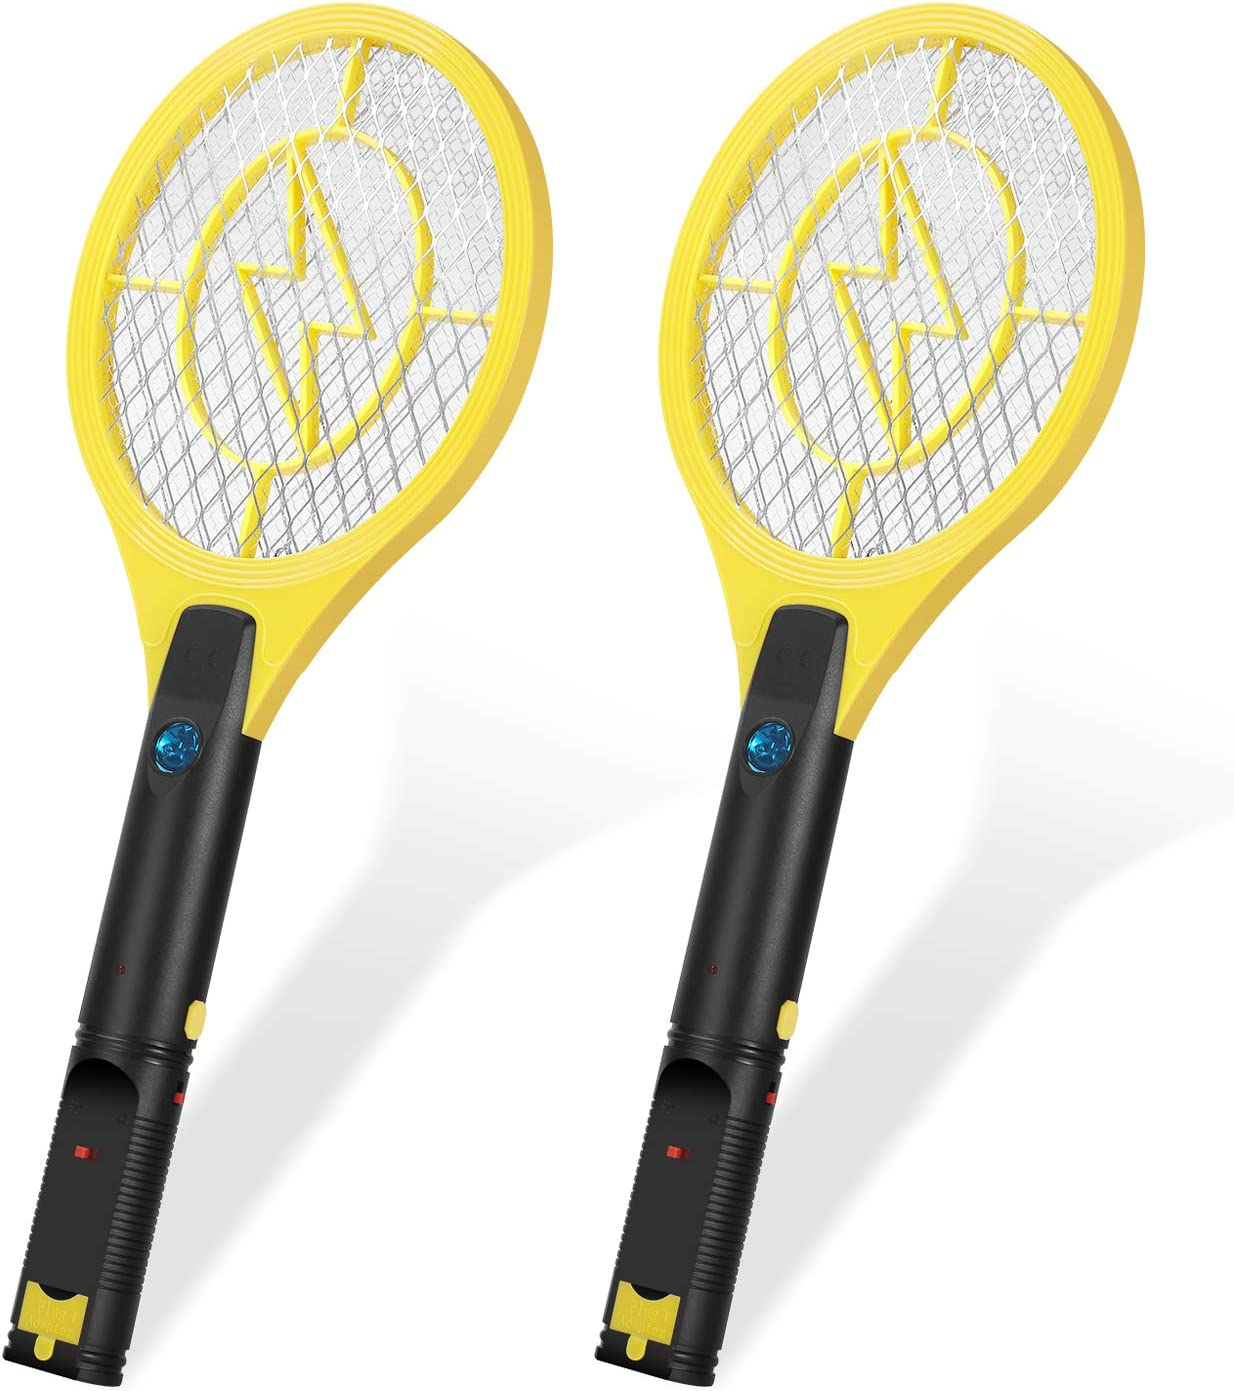 """Flexzion Electric Mosquito Zapper Racket 17"""" (2 Pack) Electric Rechargeable Bug Insect Killer/Fly Control Swatter USB Charging for Bedroom Patio Bites Yard Boat Camping Car Decks Indoor Outdoor"""